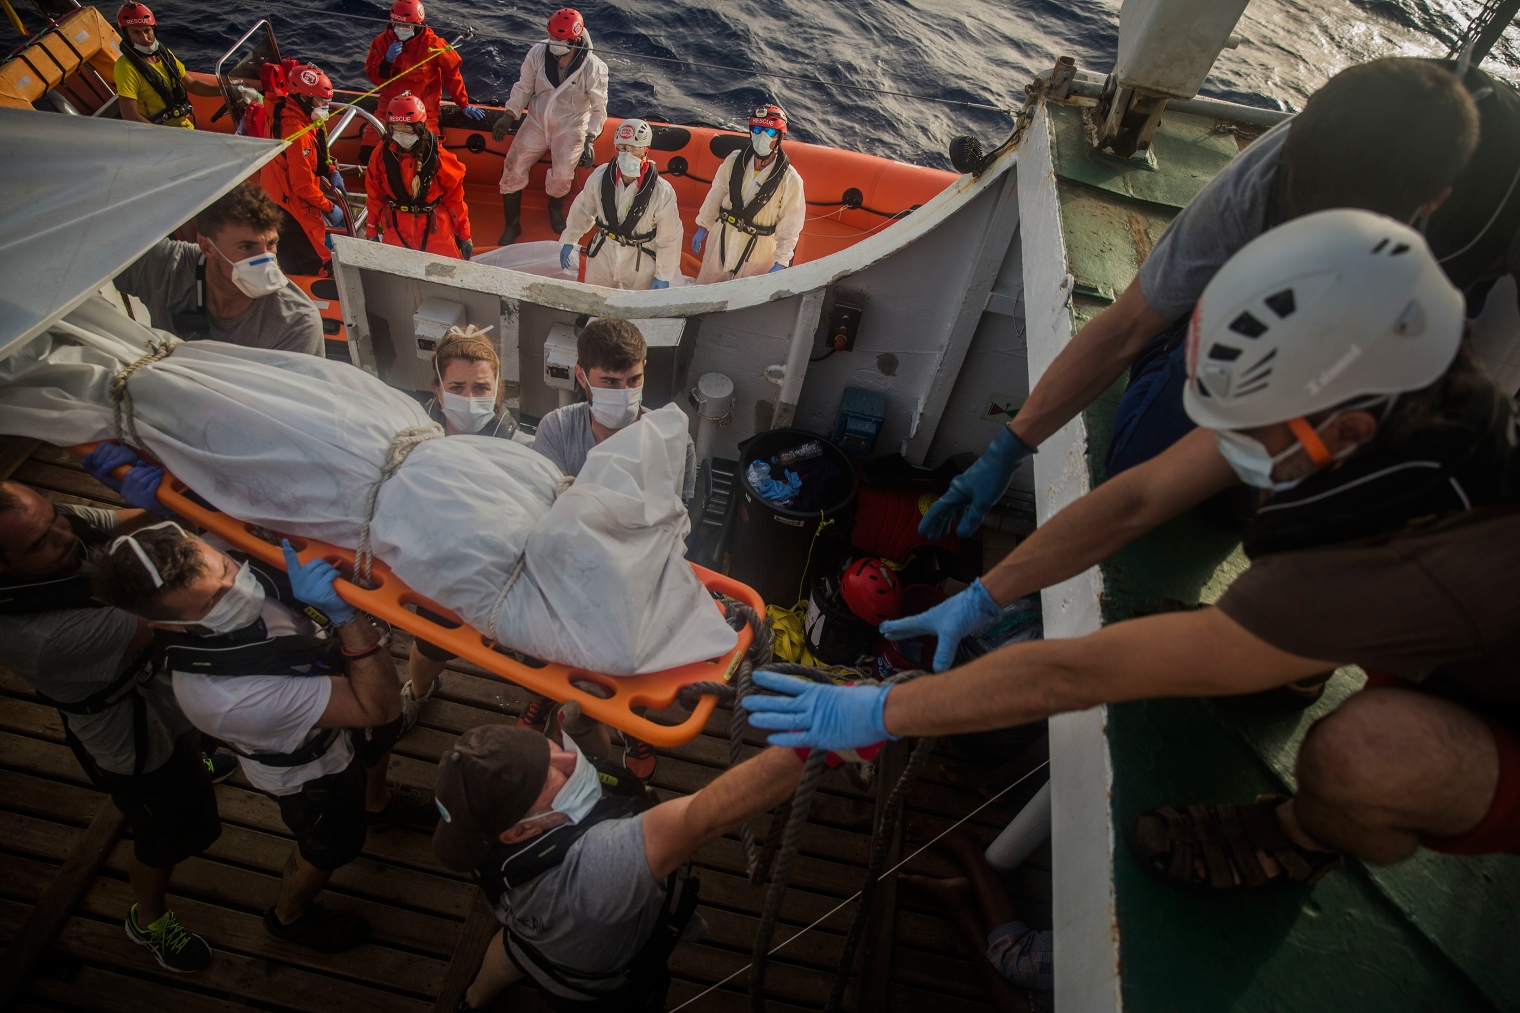 The body of a dead migrant is transferred from the rubber boat to the Open Arms vessel.